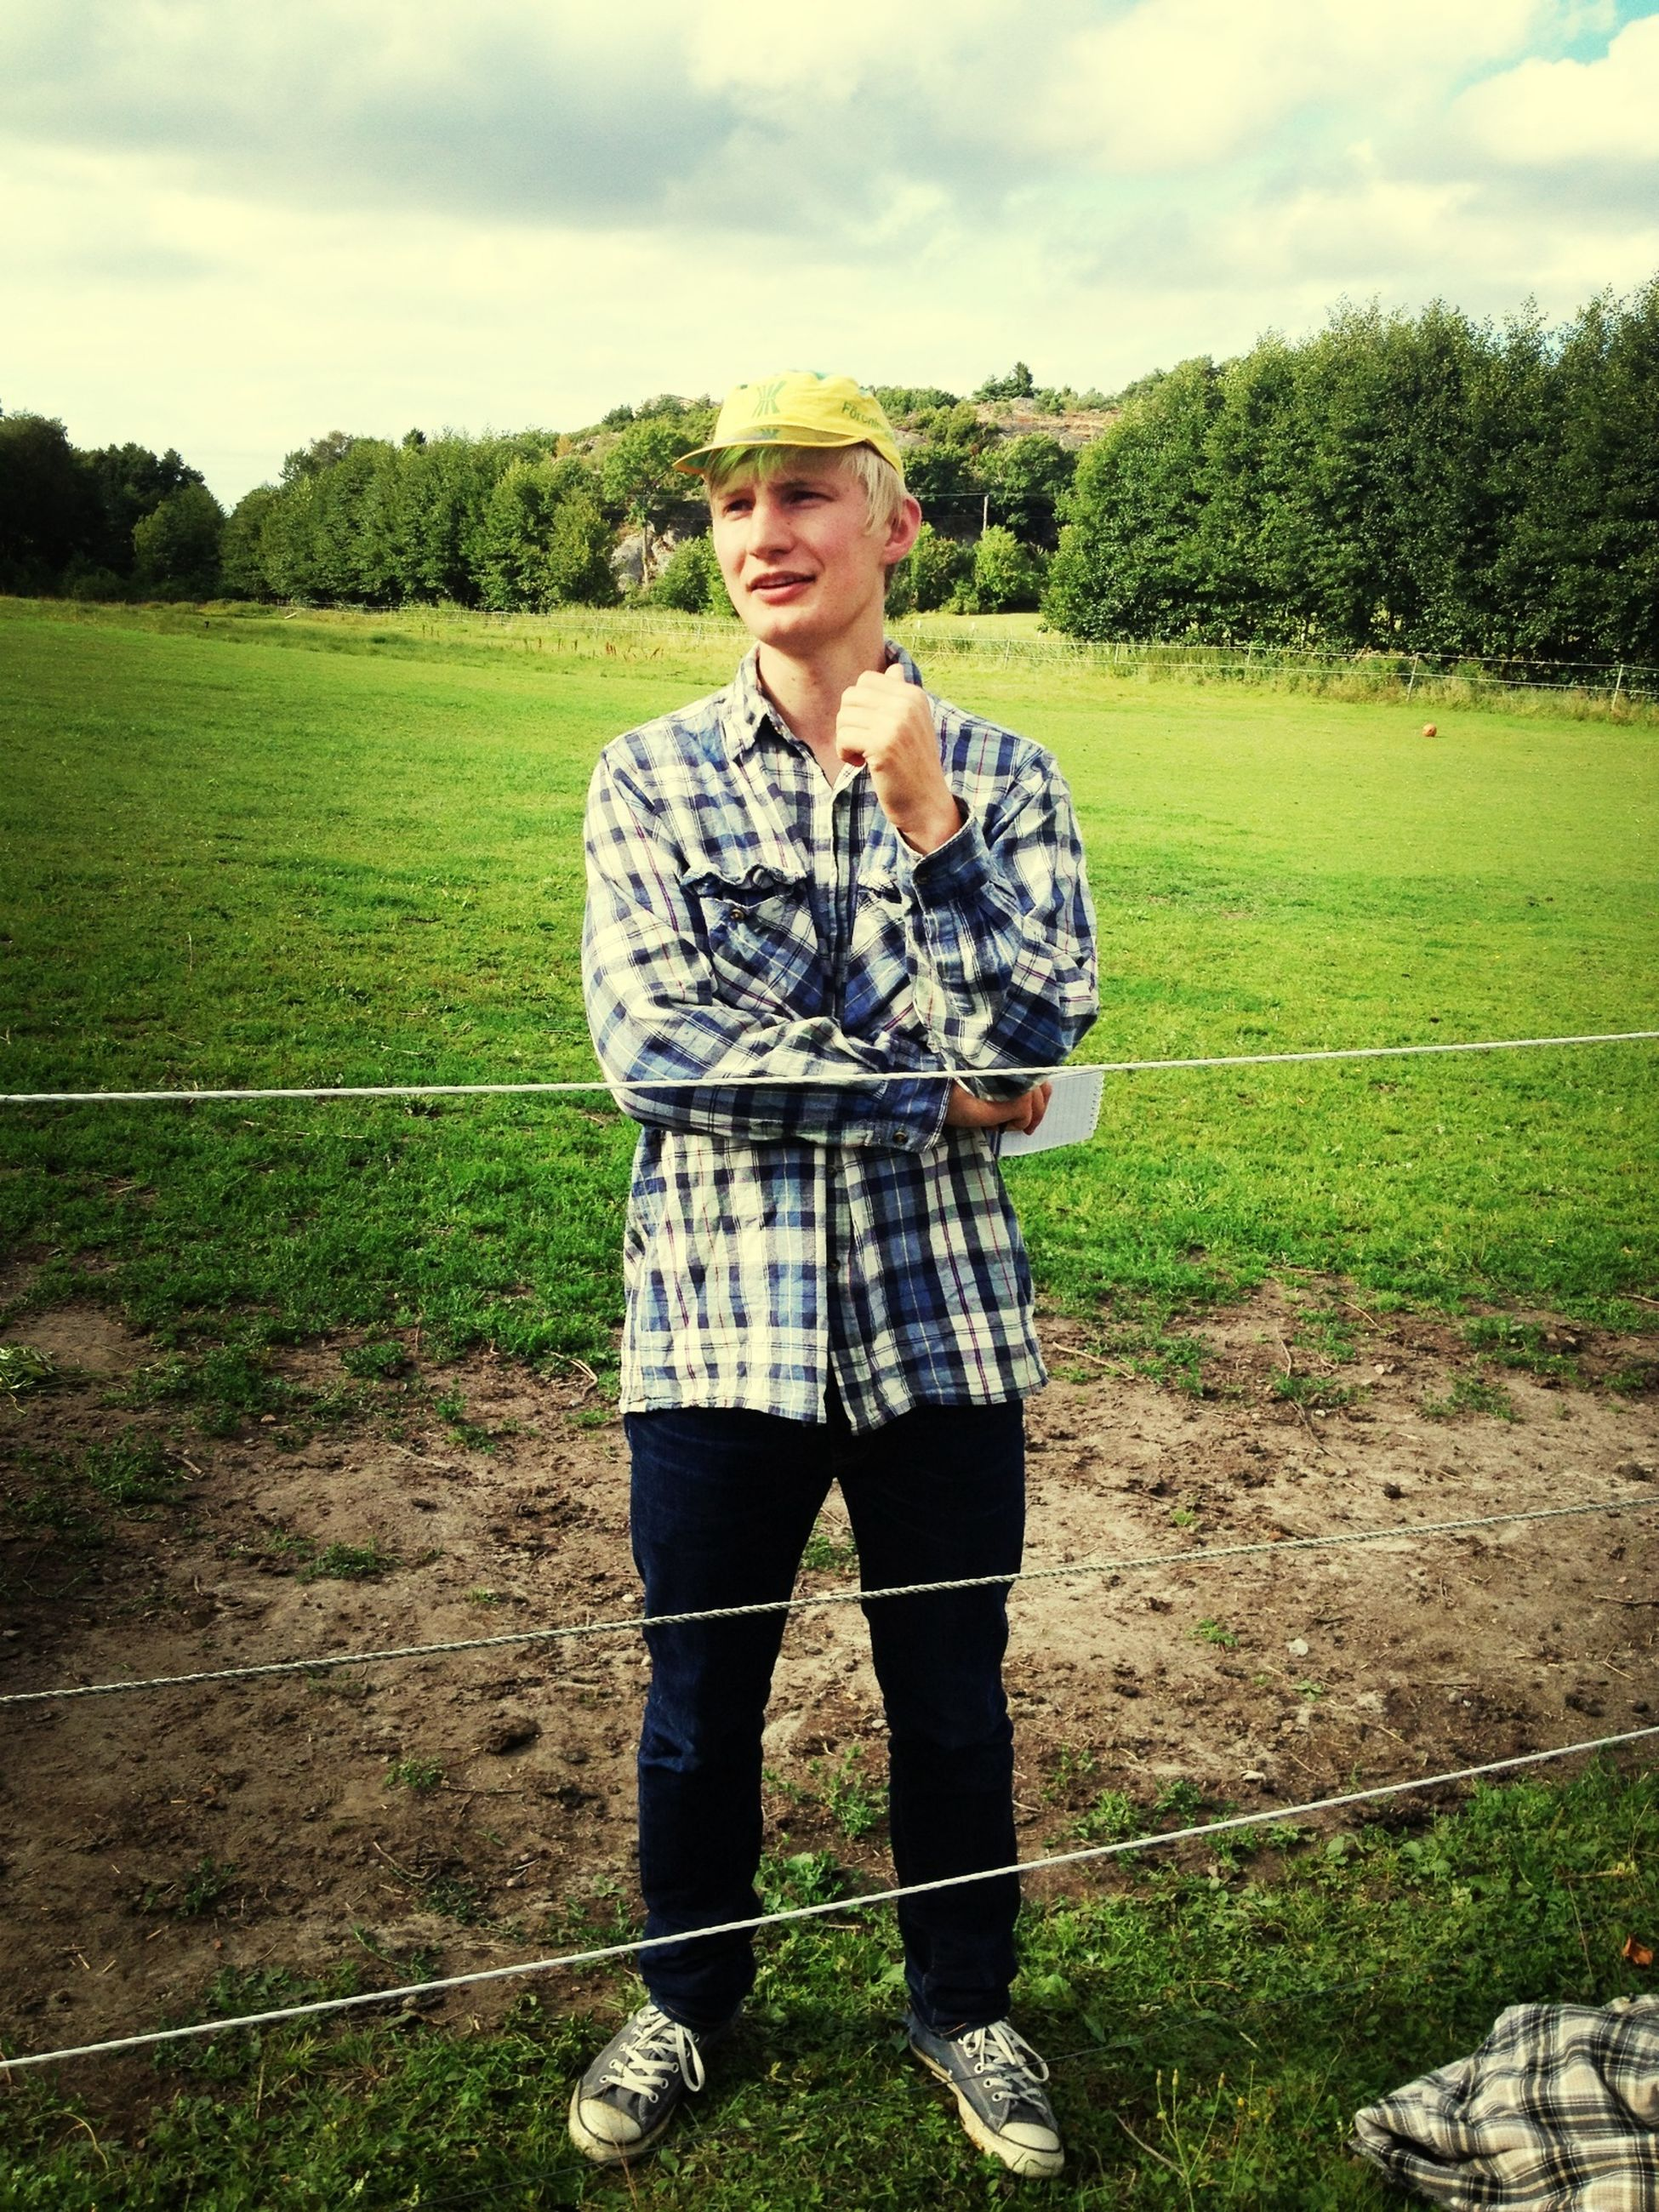 casual clothing, lifestyles, young adult, standing, grass, person, portrait, field, front view, leisure activity, looking at camera, three quarter length, young men, sky, full length, landscape, nature